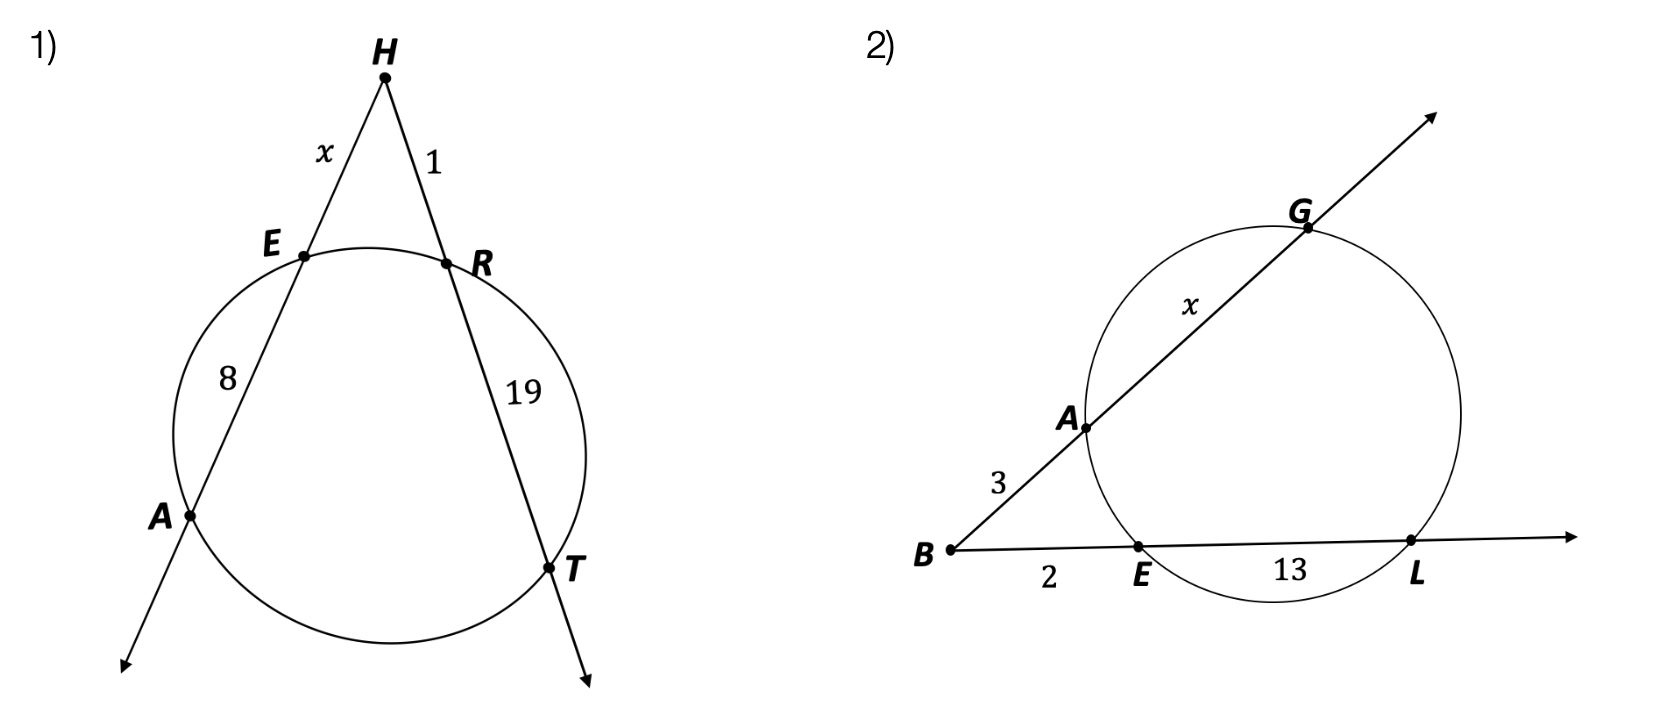 Intersecting Secants Theorem